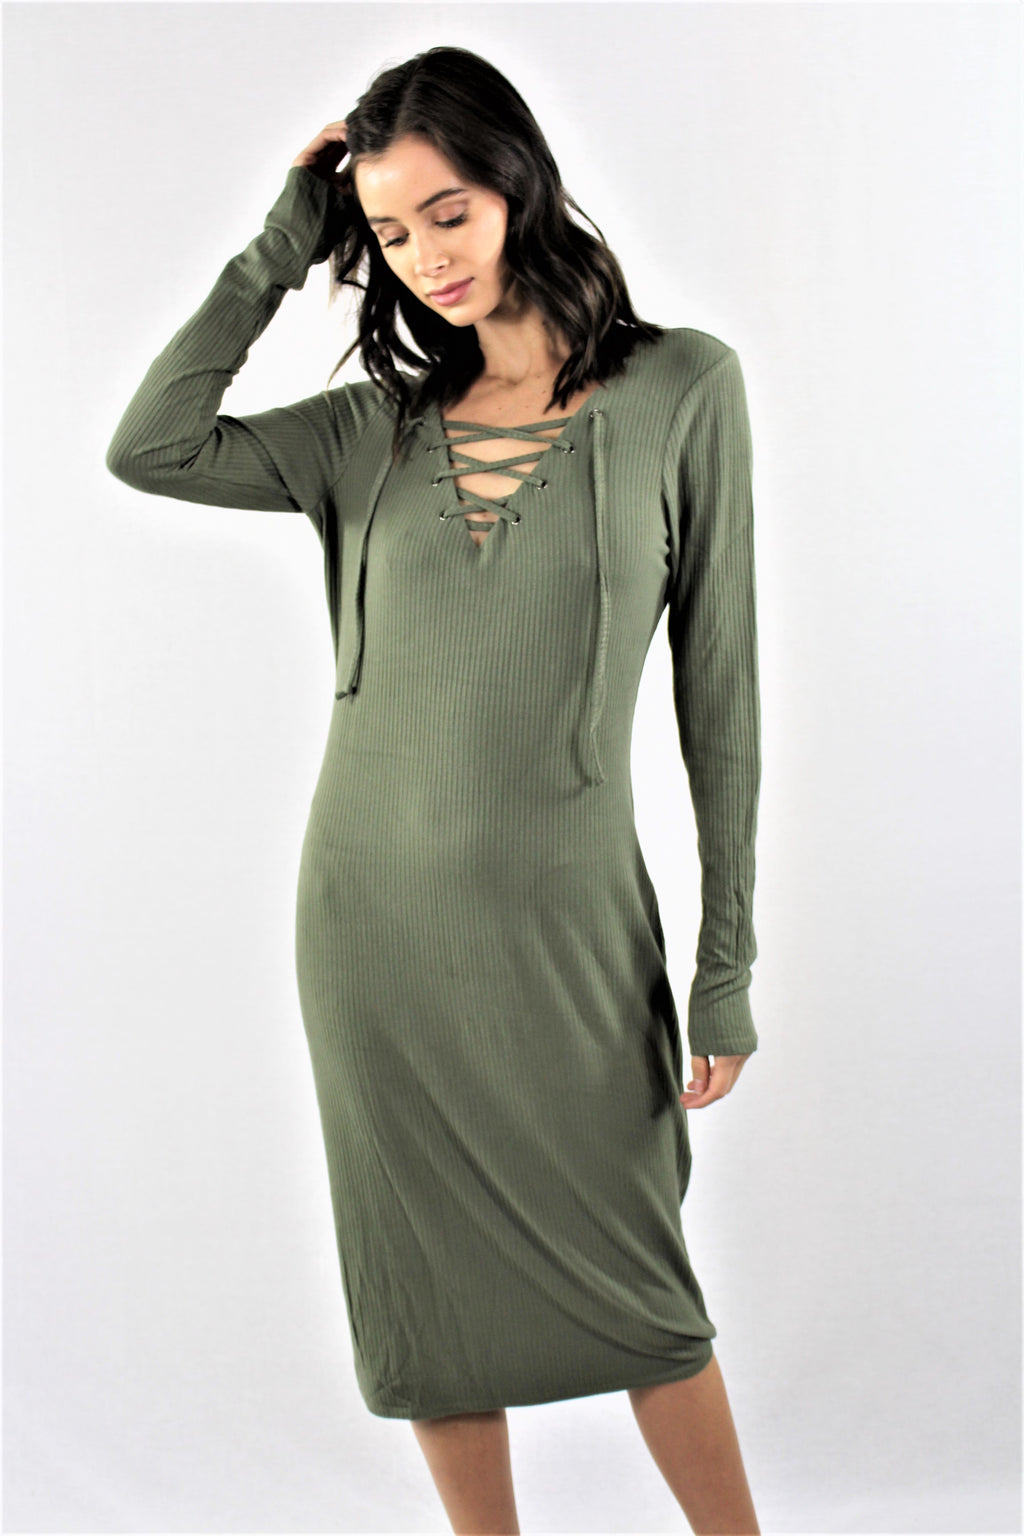 Women's Lace Up Straight Cut Dress